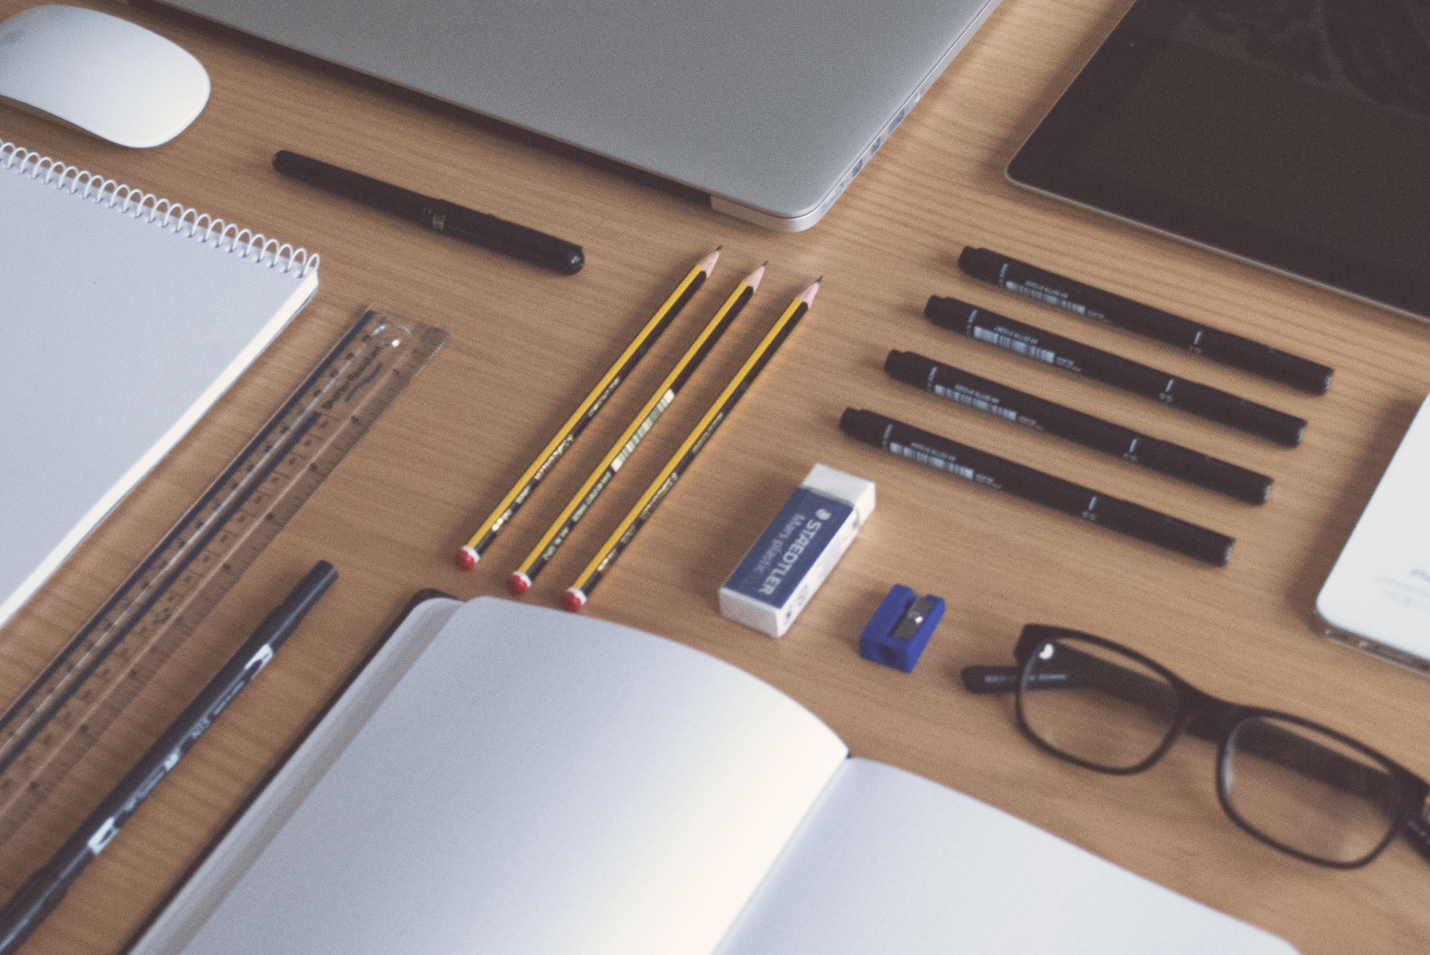 Pencils and Pens on desk